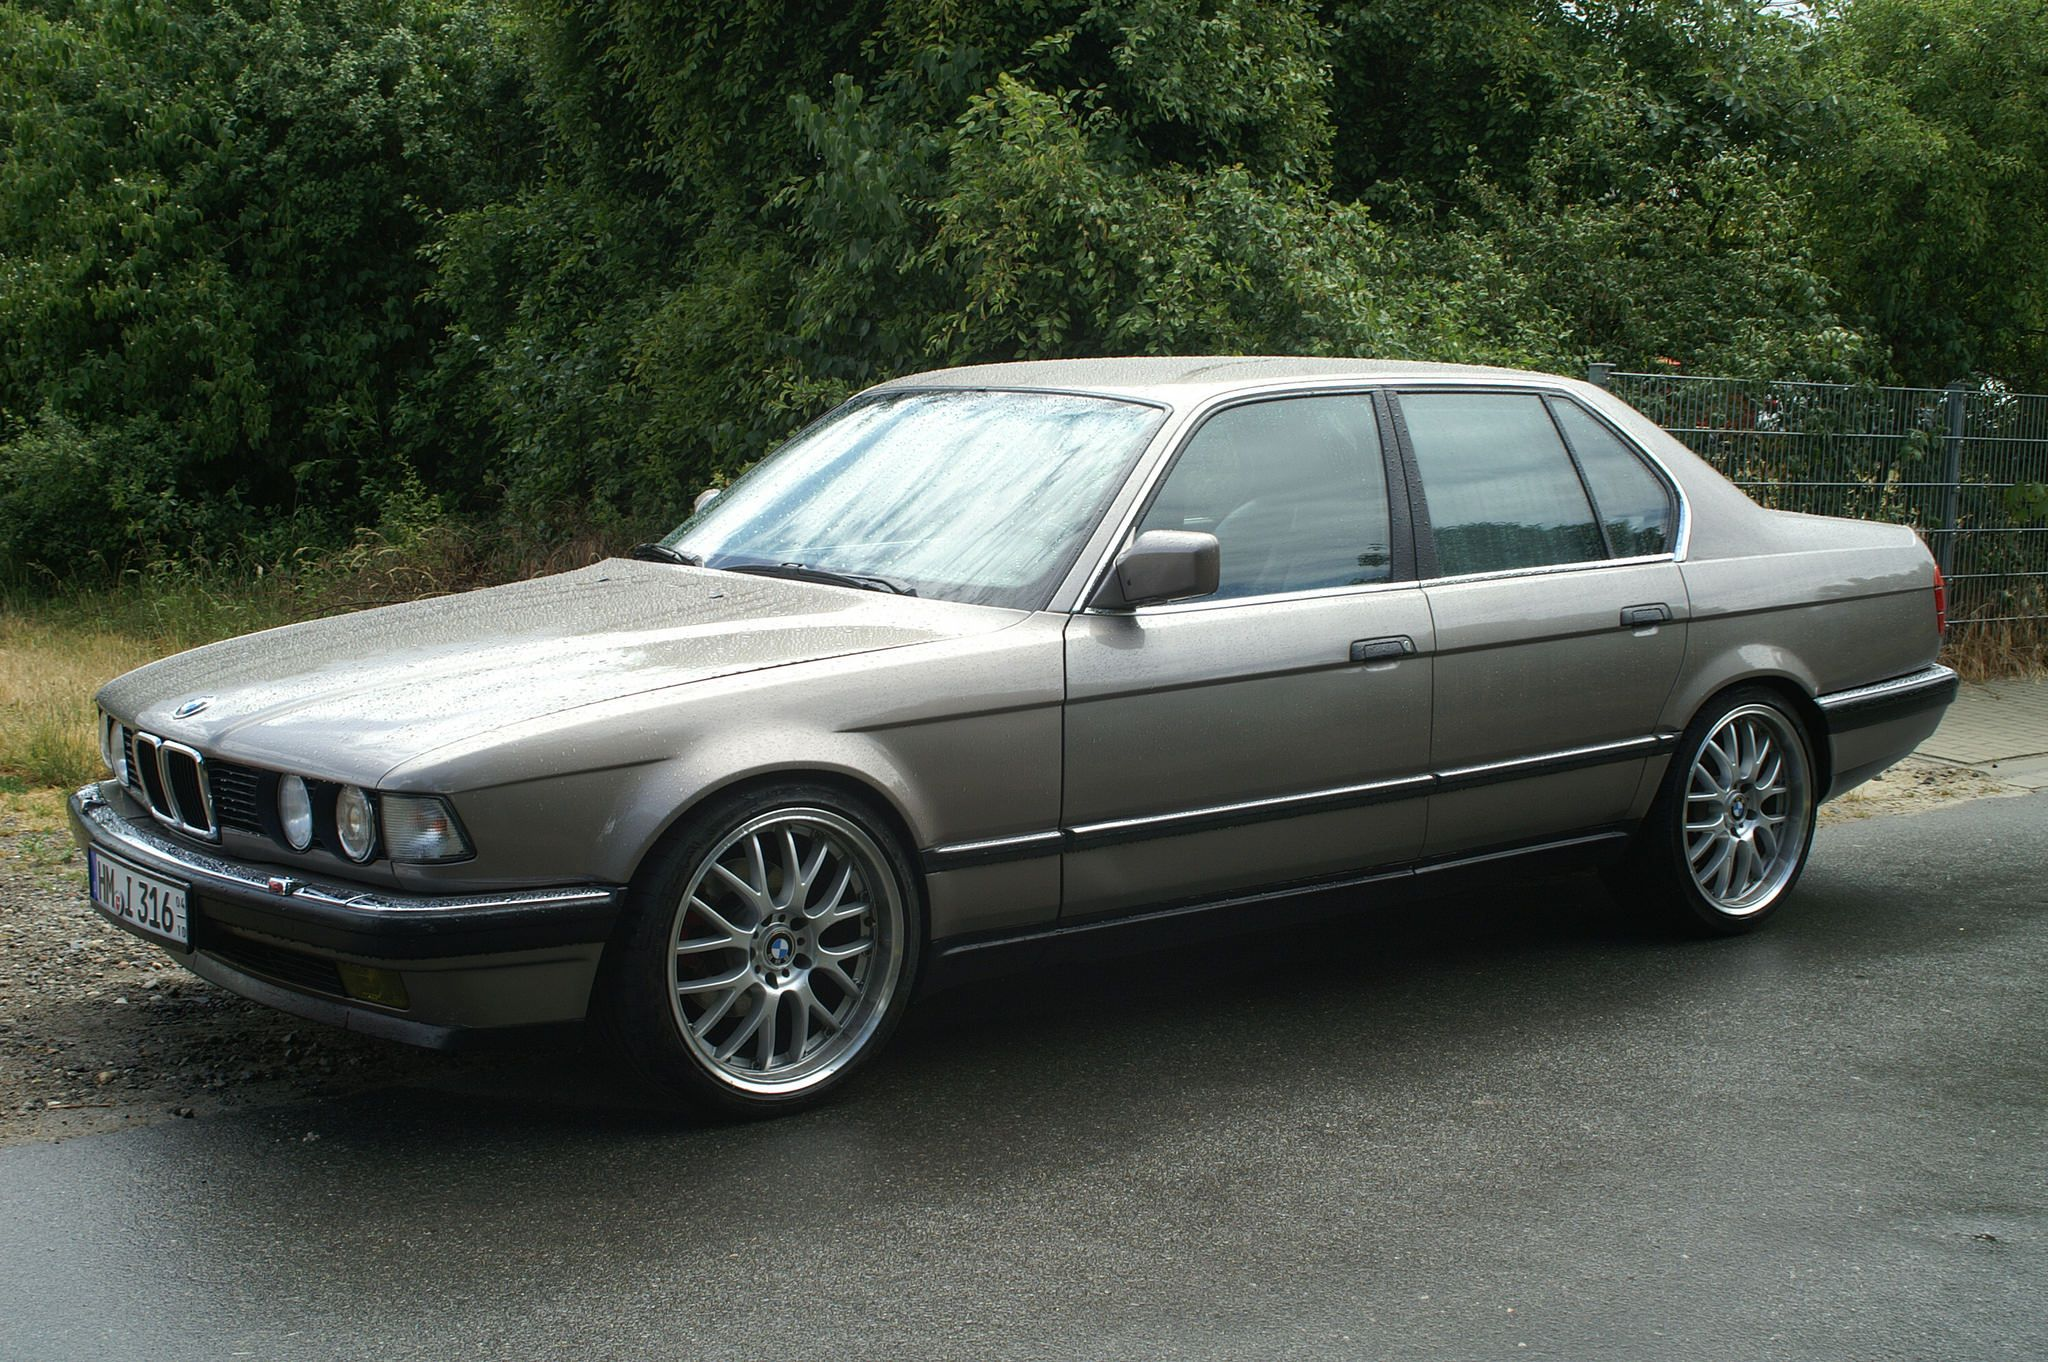 Bmw e32 7 series silver alpina wheels bmw ultimate driving machine pinterest bmw wheels and cars